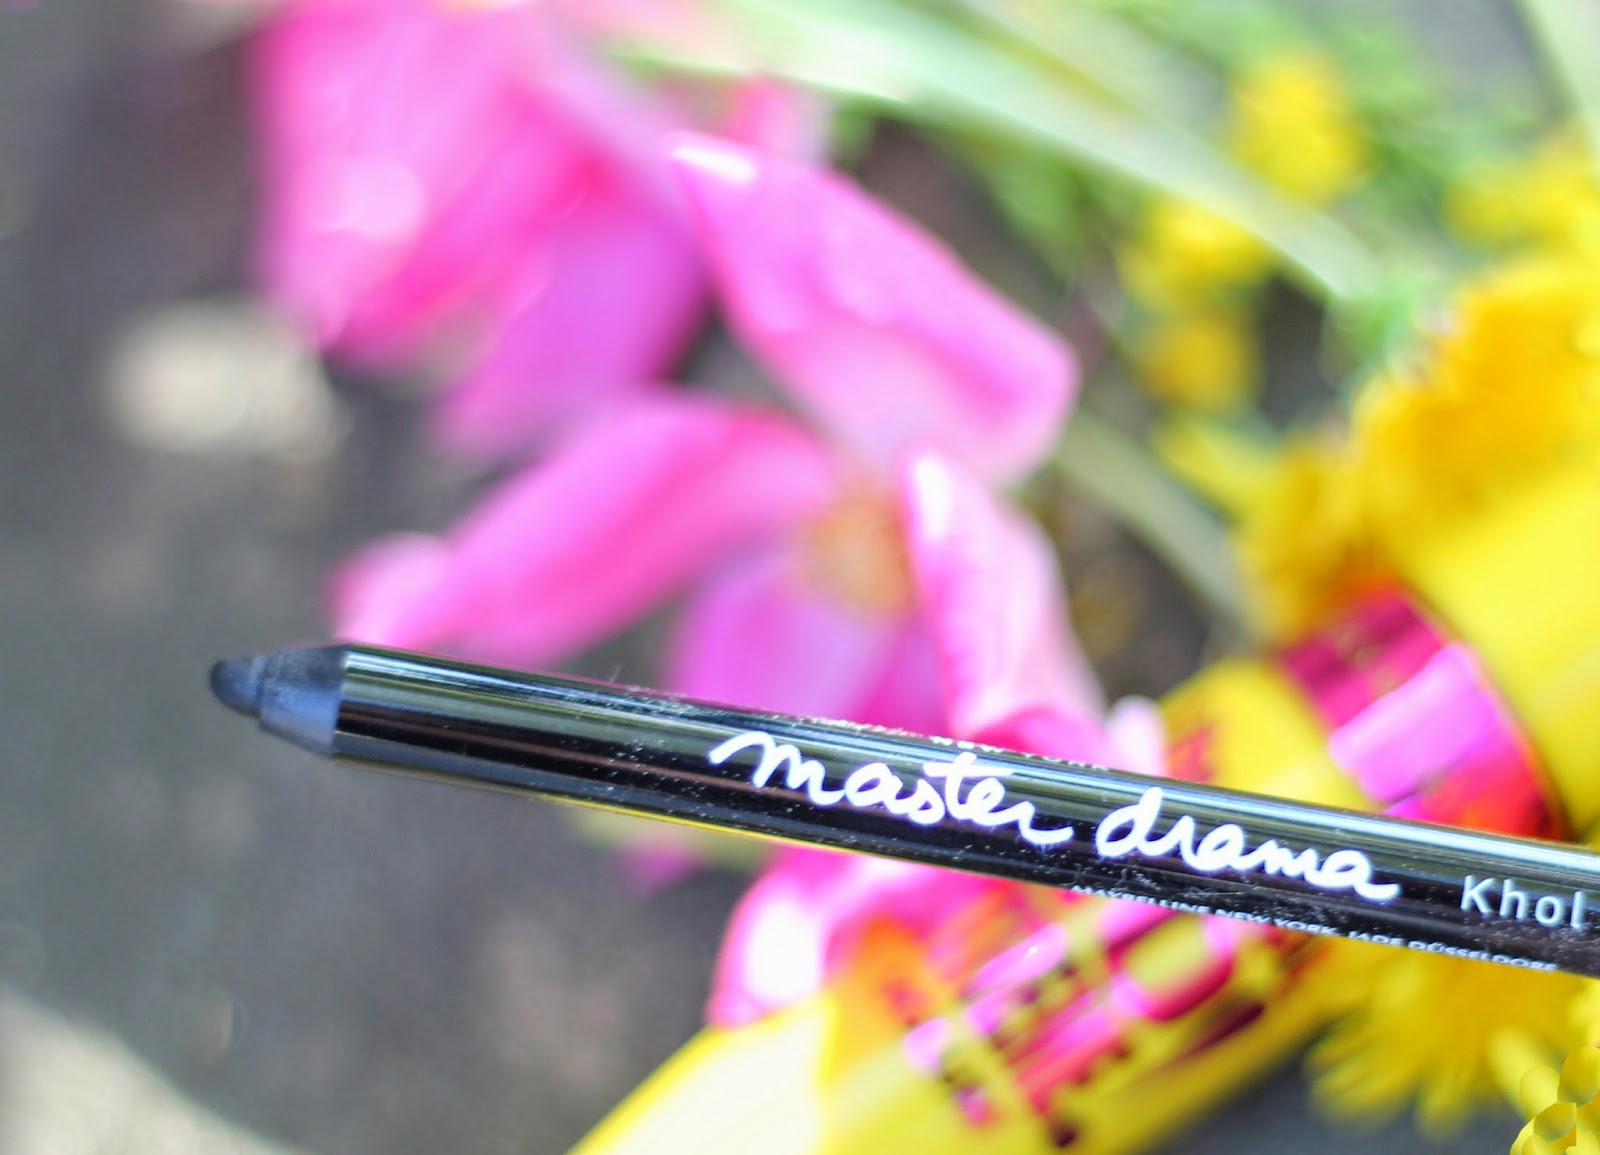 photo-maybelline-master_drama_khol_liner